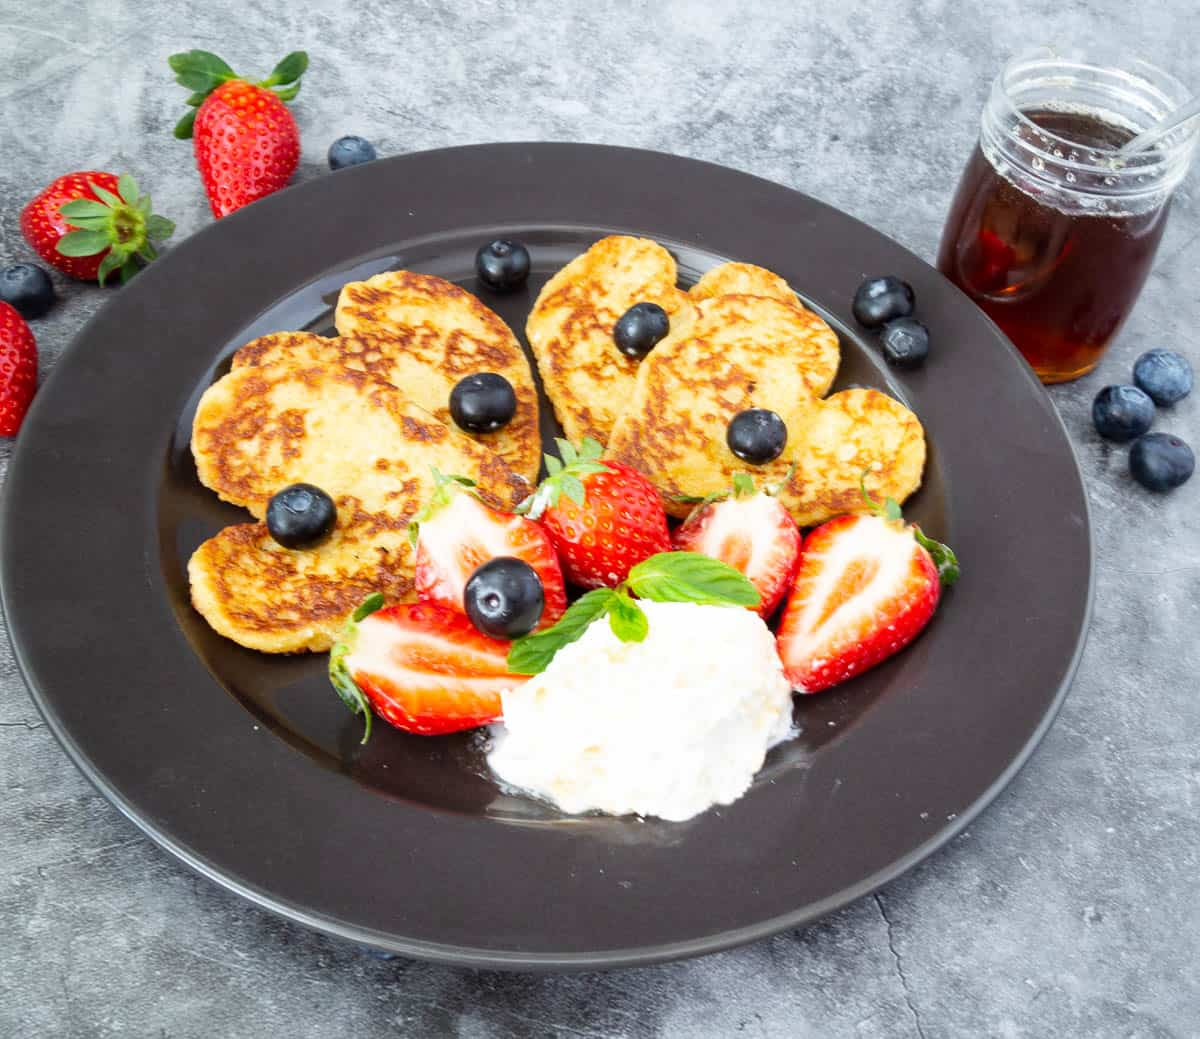 French toast and fruits on a black plate